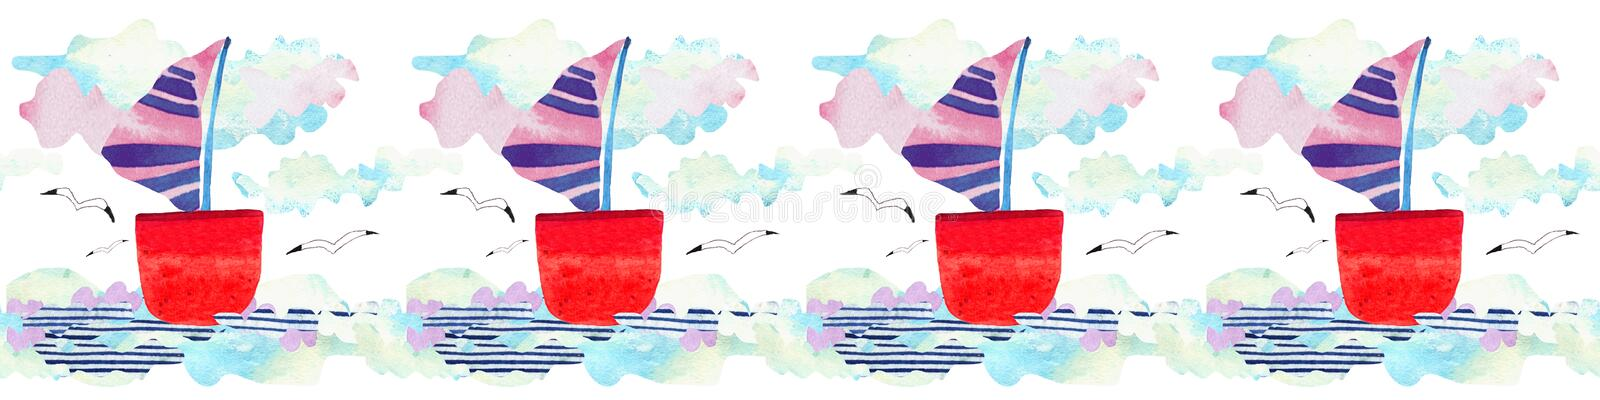 Watercolor Sea waves, ship and seagull in paper art style. Travel concept illustration. stock images